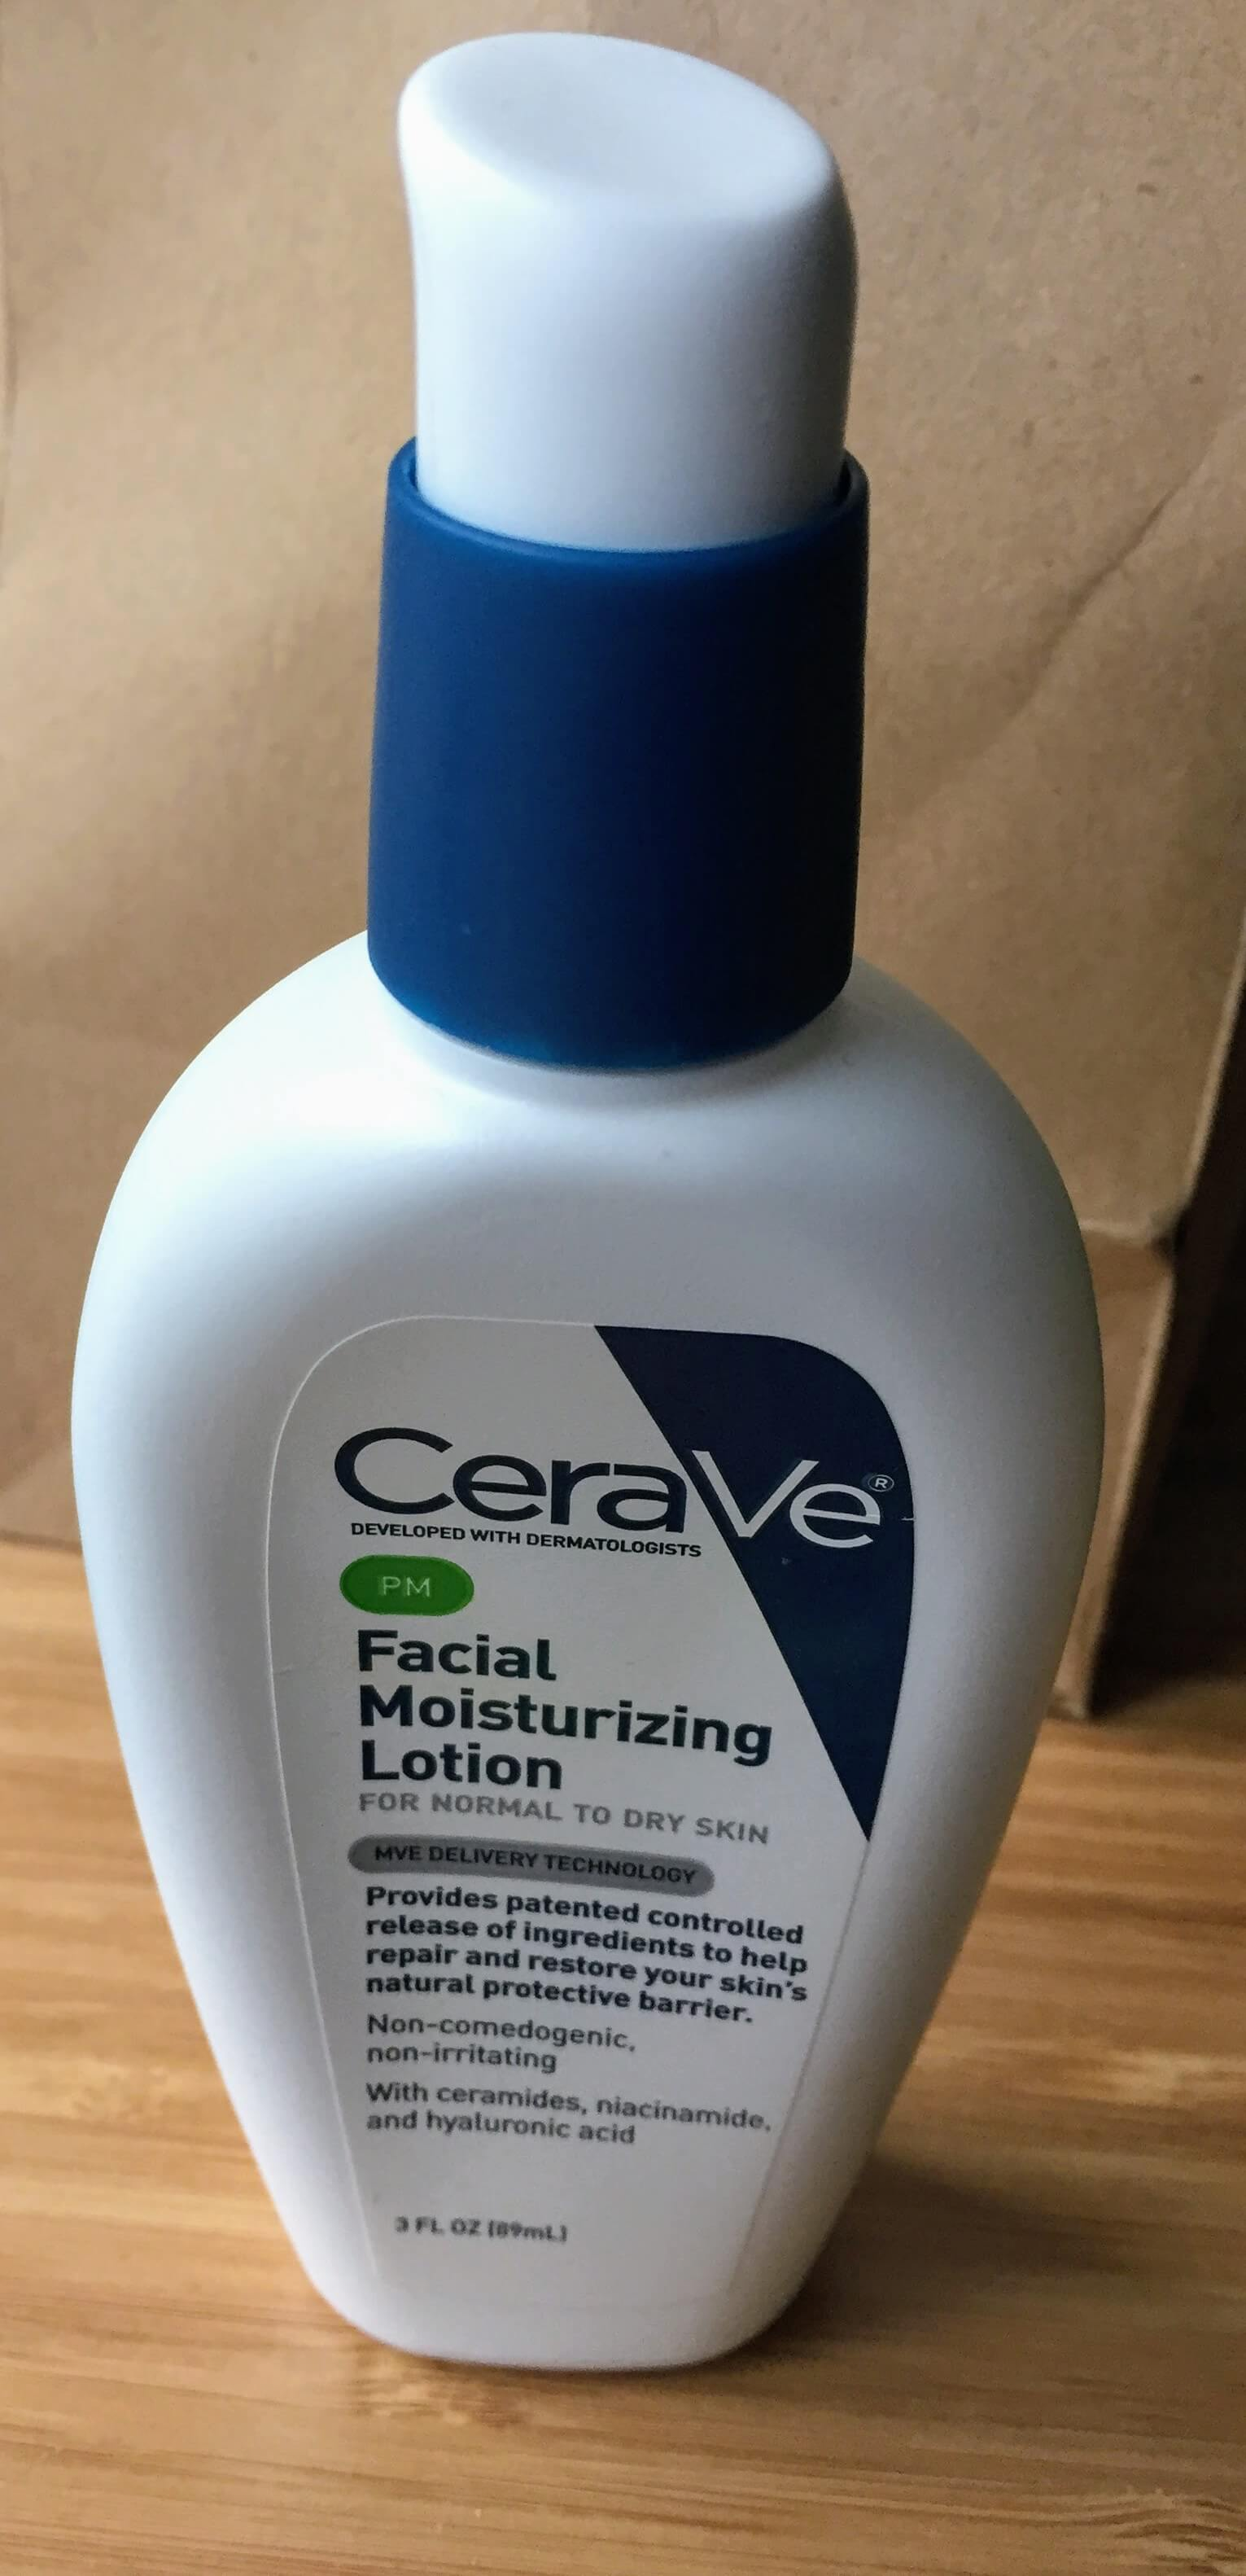 CeraVe facial moisturizing lotion pm review